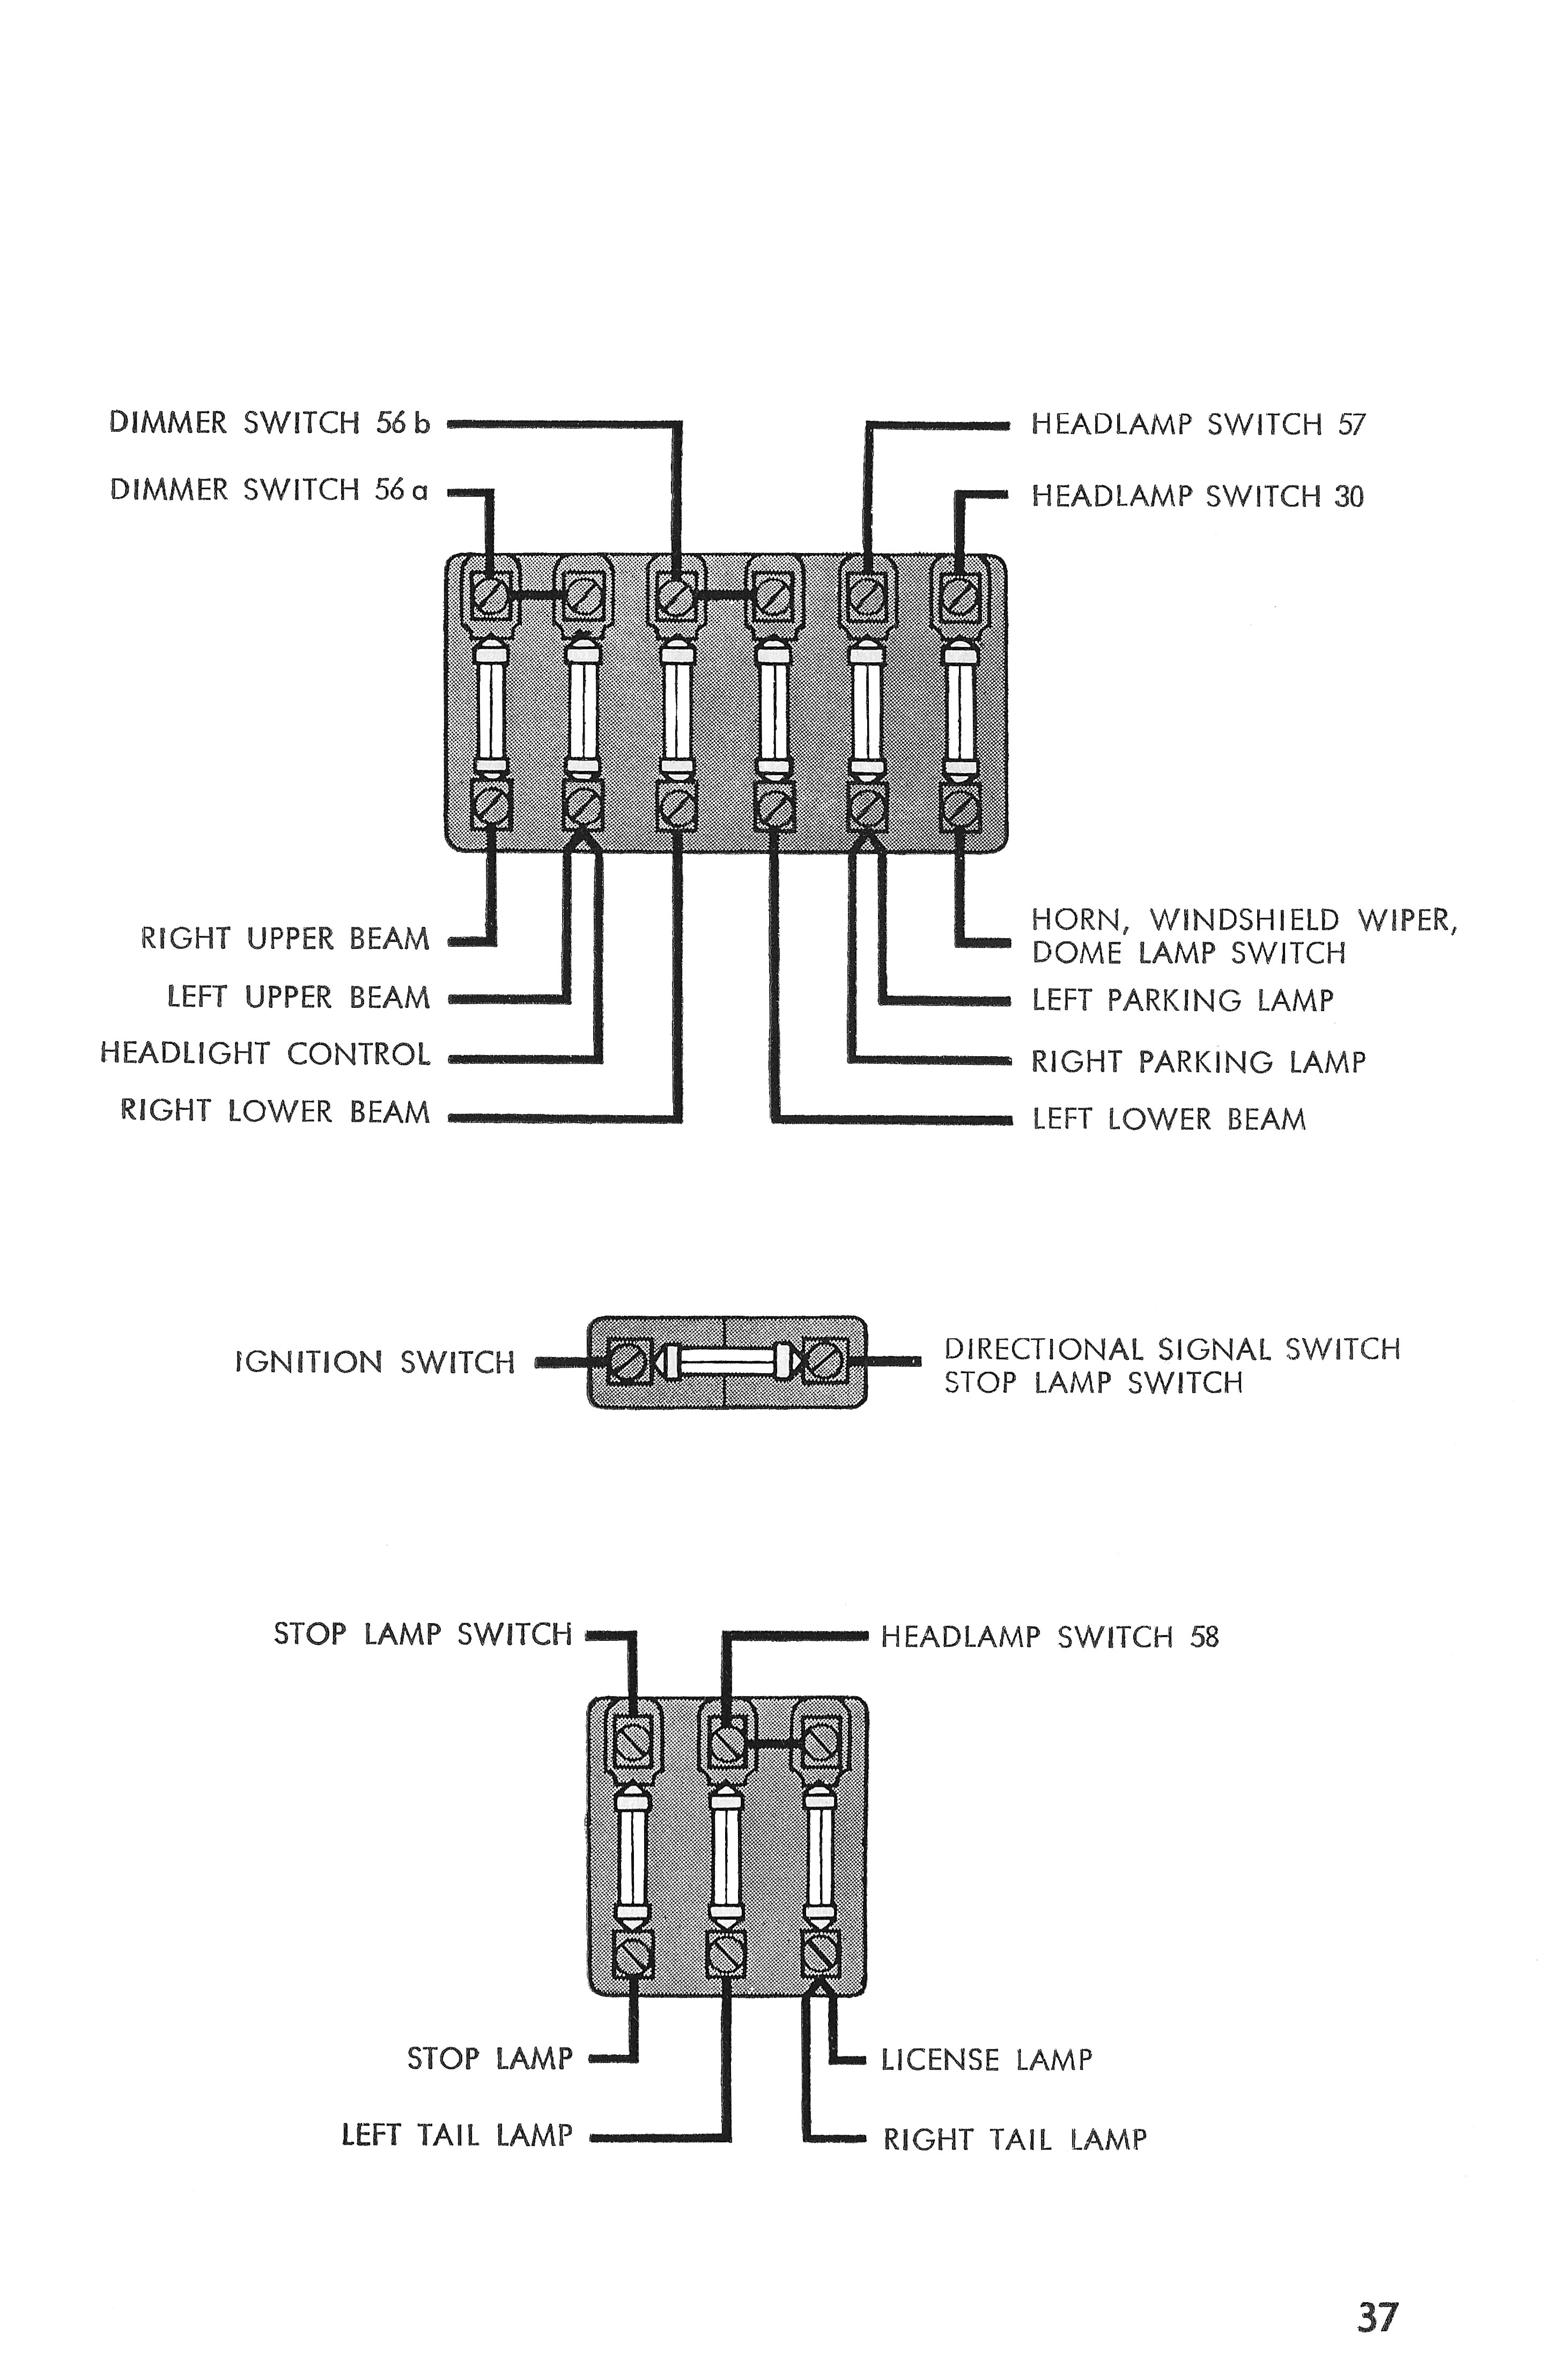 TheSamba.com :: Type 1 Wiring Diagrams on 56 chevy frame, 1957 chevy ignition switch diagram, 56 chevy fuse block wiring, 1956 chevy ignition switch diagram, 56 chevy neutral safety switch, 56 chevy alternator, 56 chevy generator, 56 chevy dash wiring, 56 chevy air conditioning, cucv fuse block diagram, 1956 chevy fuse box diagram, 56 chevy wiring book, 56 chevy suspension, 56 chevy automatic transmission, 56 chevy motor, selenium rectifier diagram, 56 chevy timing, 56 chevy ignition switch, 55 chevy headlight switch diagram, 56 chevy parts diagram,